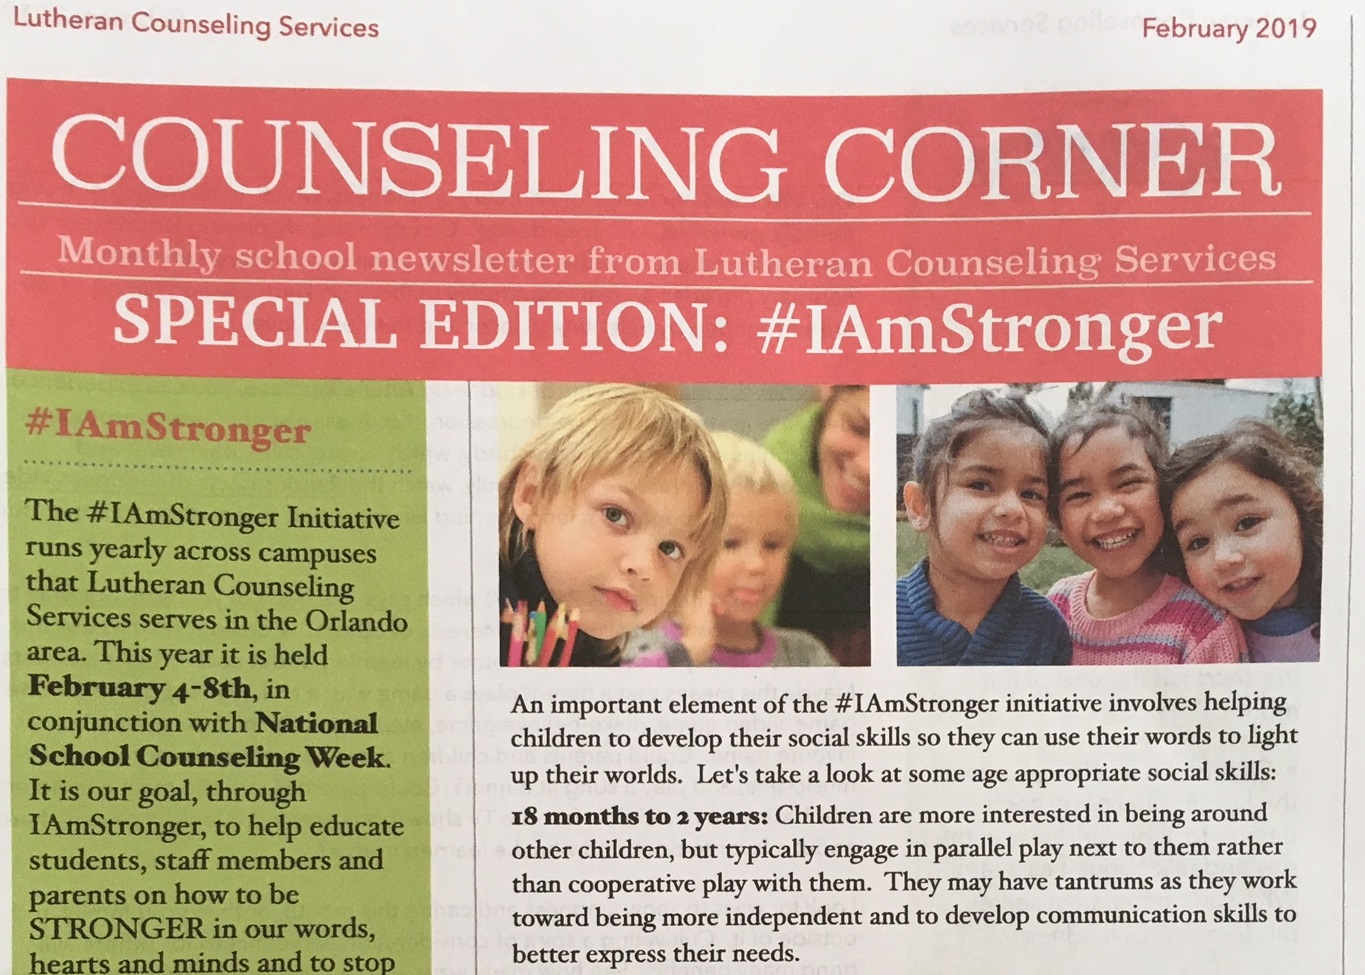 Counseling Corner - #IAMSTRONGER Edition